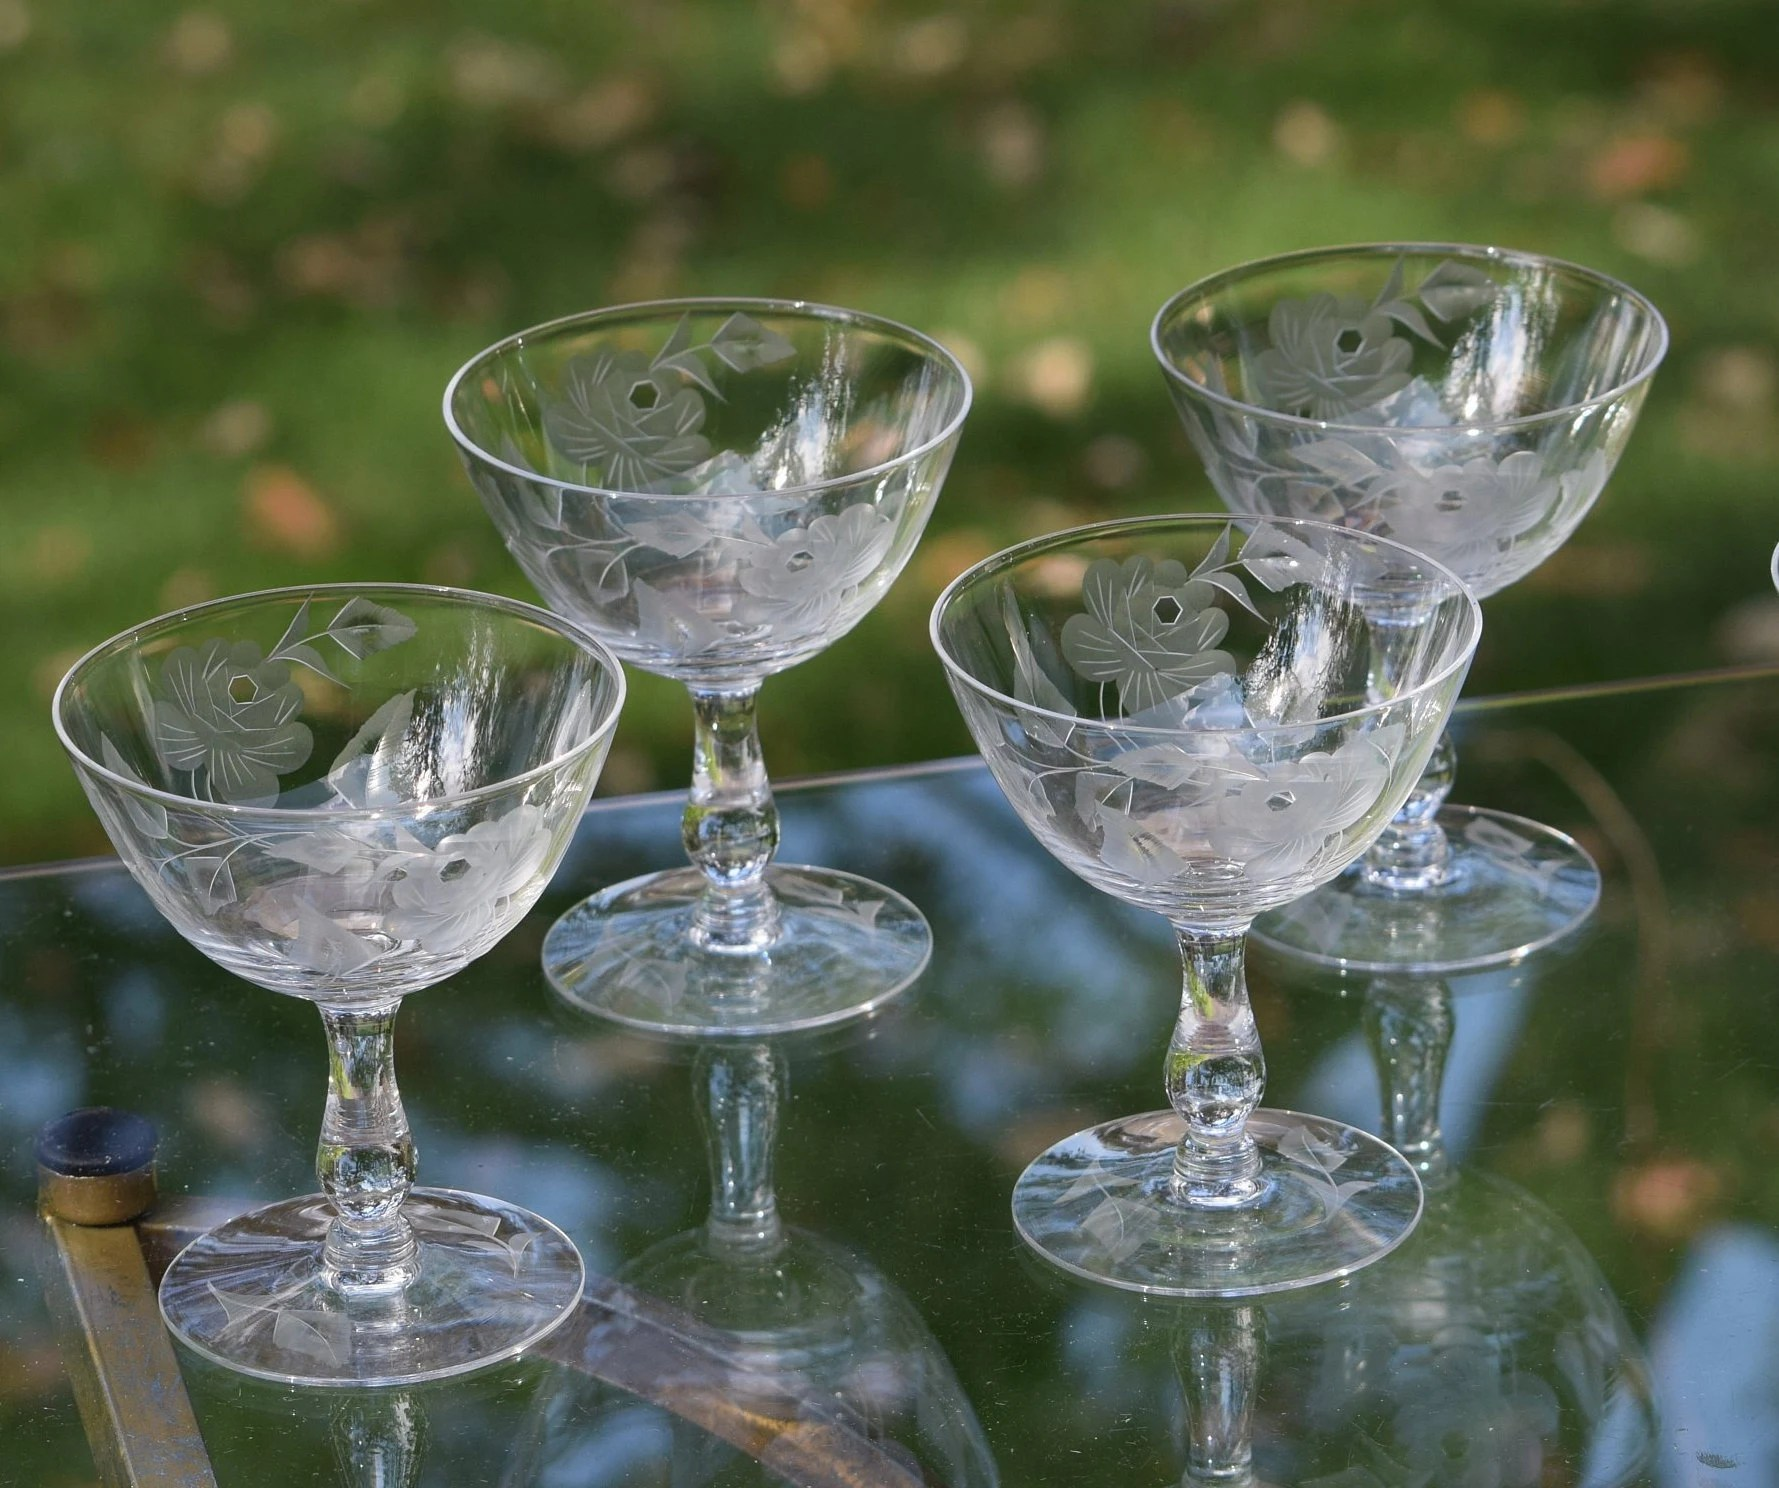 Champagne Coupe Vintage Etched Crystal Champagne Coupe Glasses Set Of 6 Vintage Etched Cocktail Martini Glasses Antique Cocktail Glasses